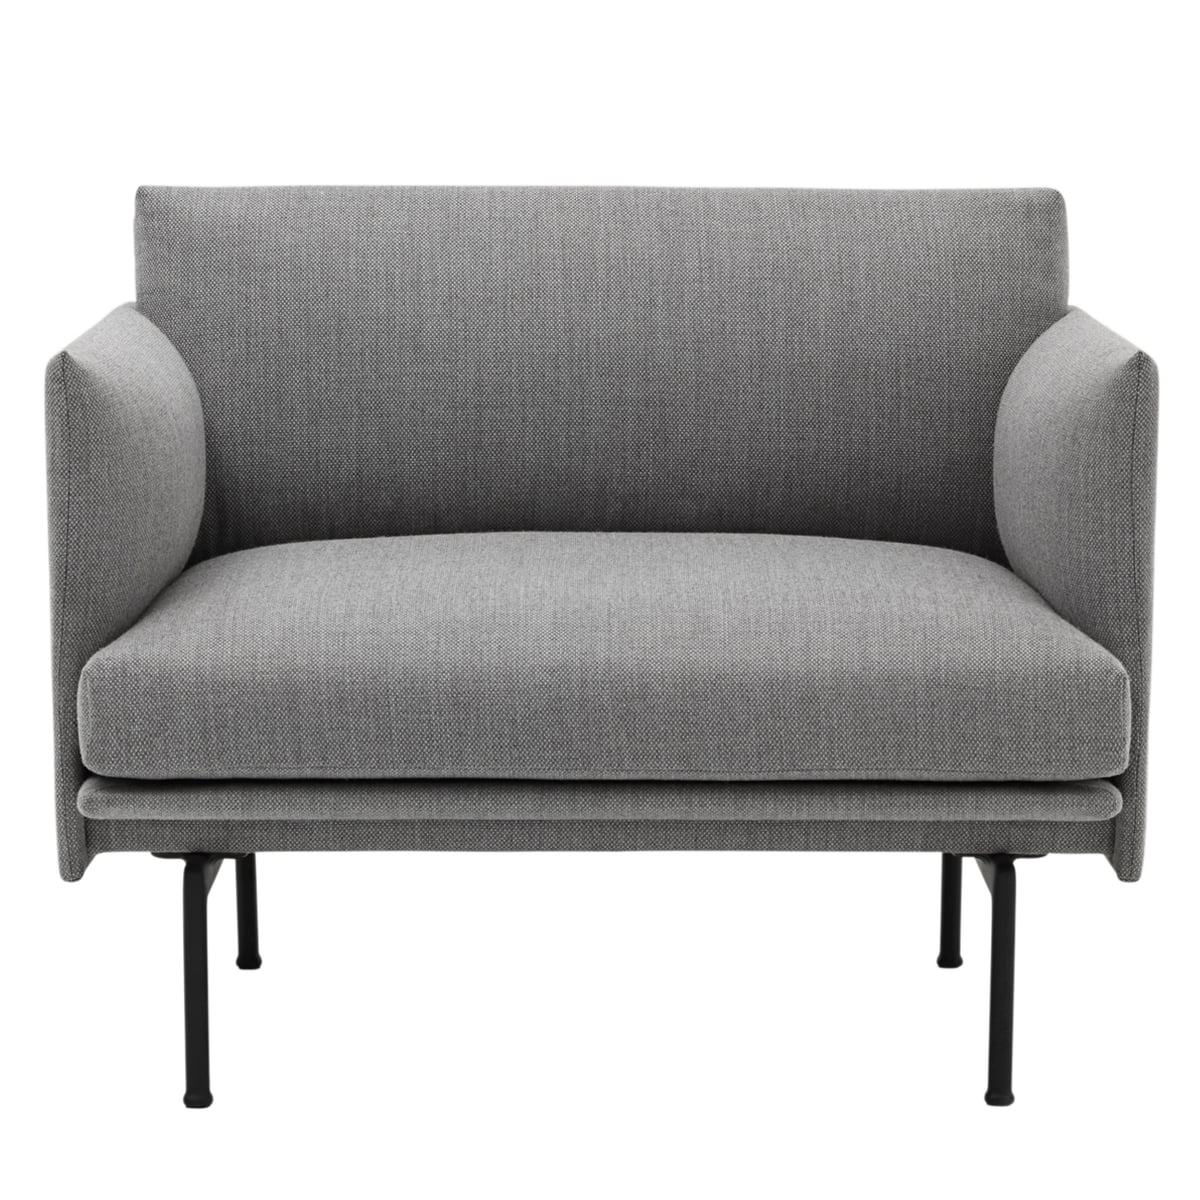 Fjord Sessel Outline Sessel Von Muuto Connox Shop